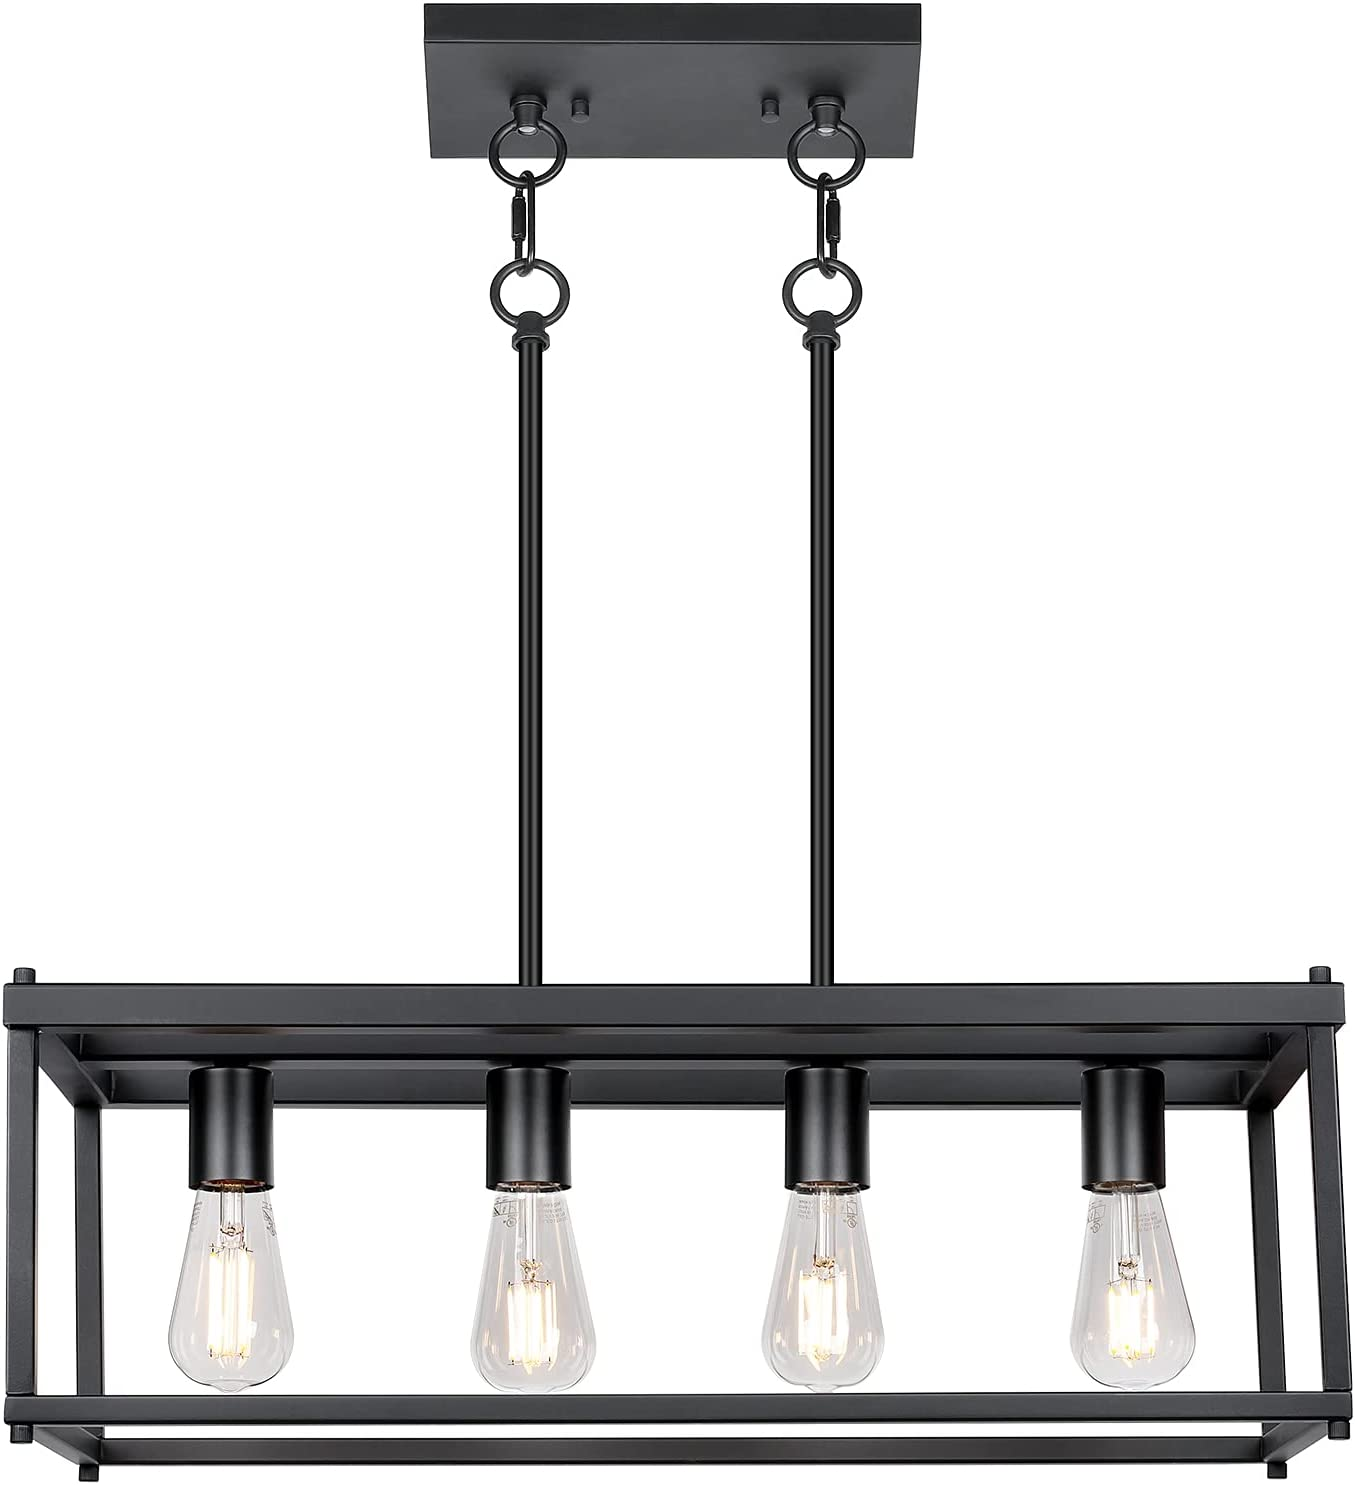 4-Light Island Lights Easy-to-use Industrial Dining Complete Free Shipping Fixture Lighting Room